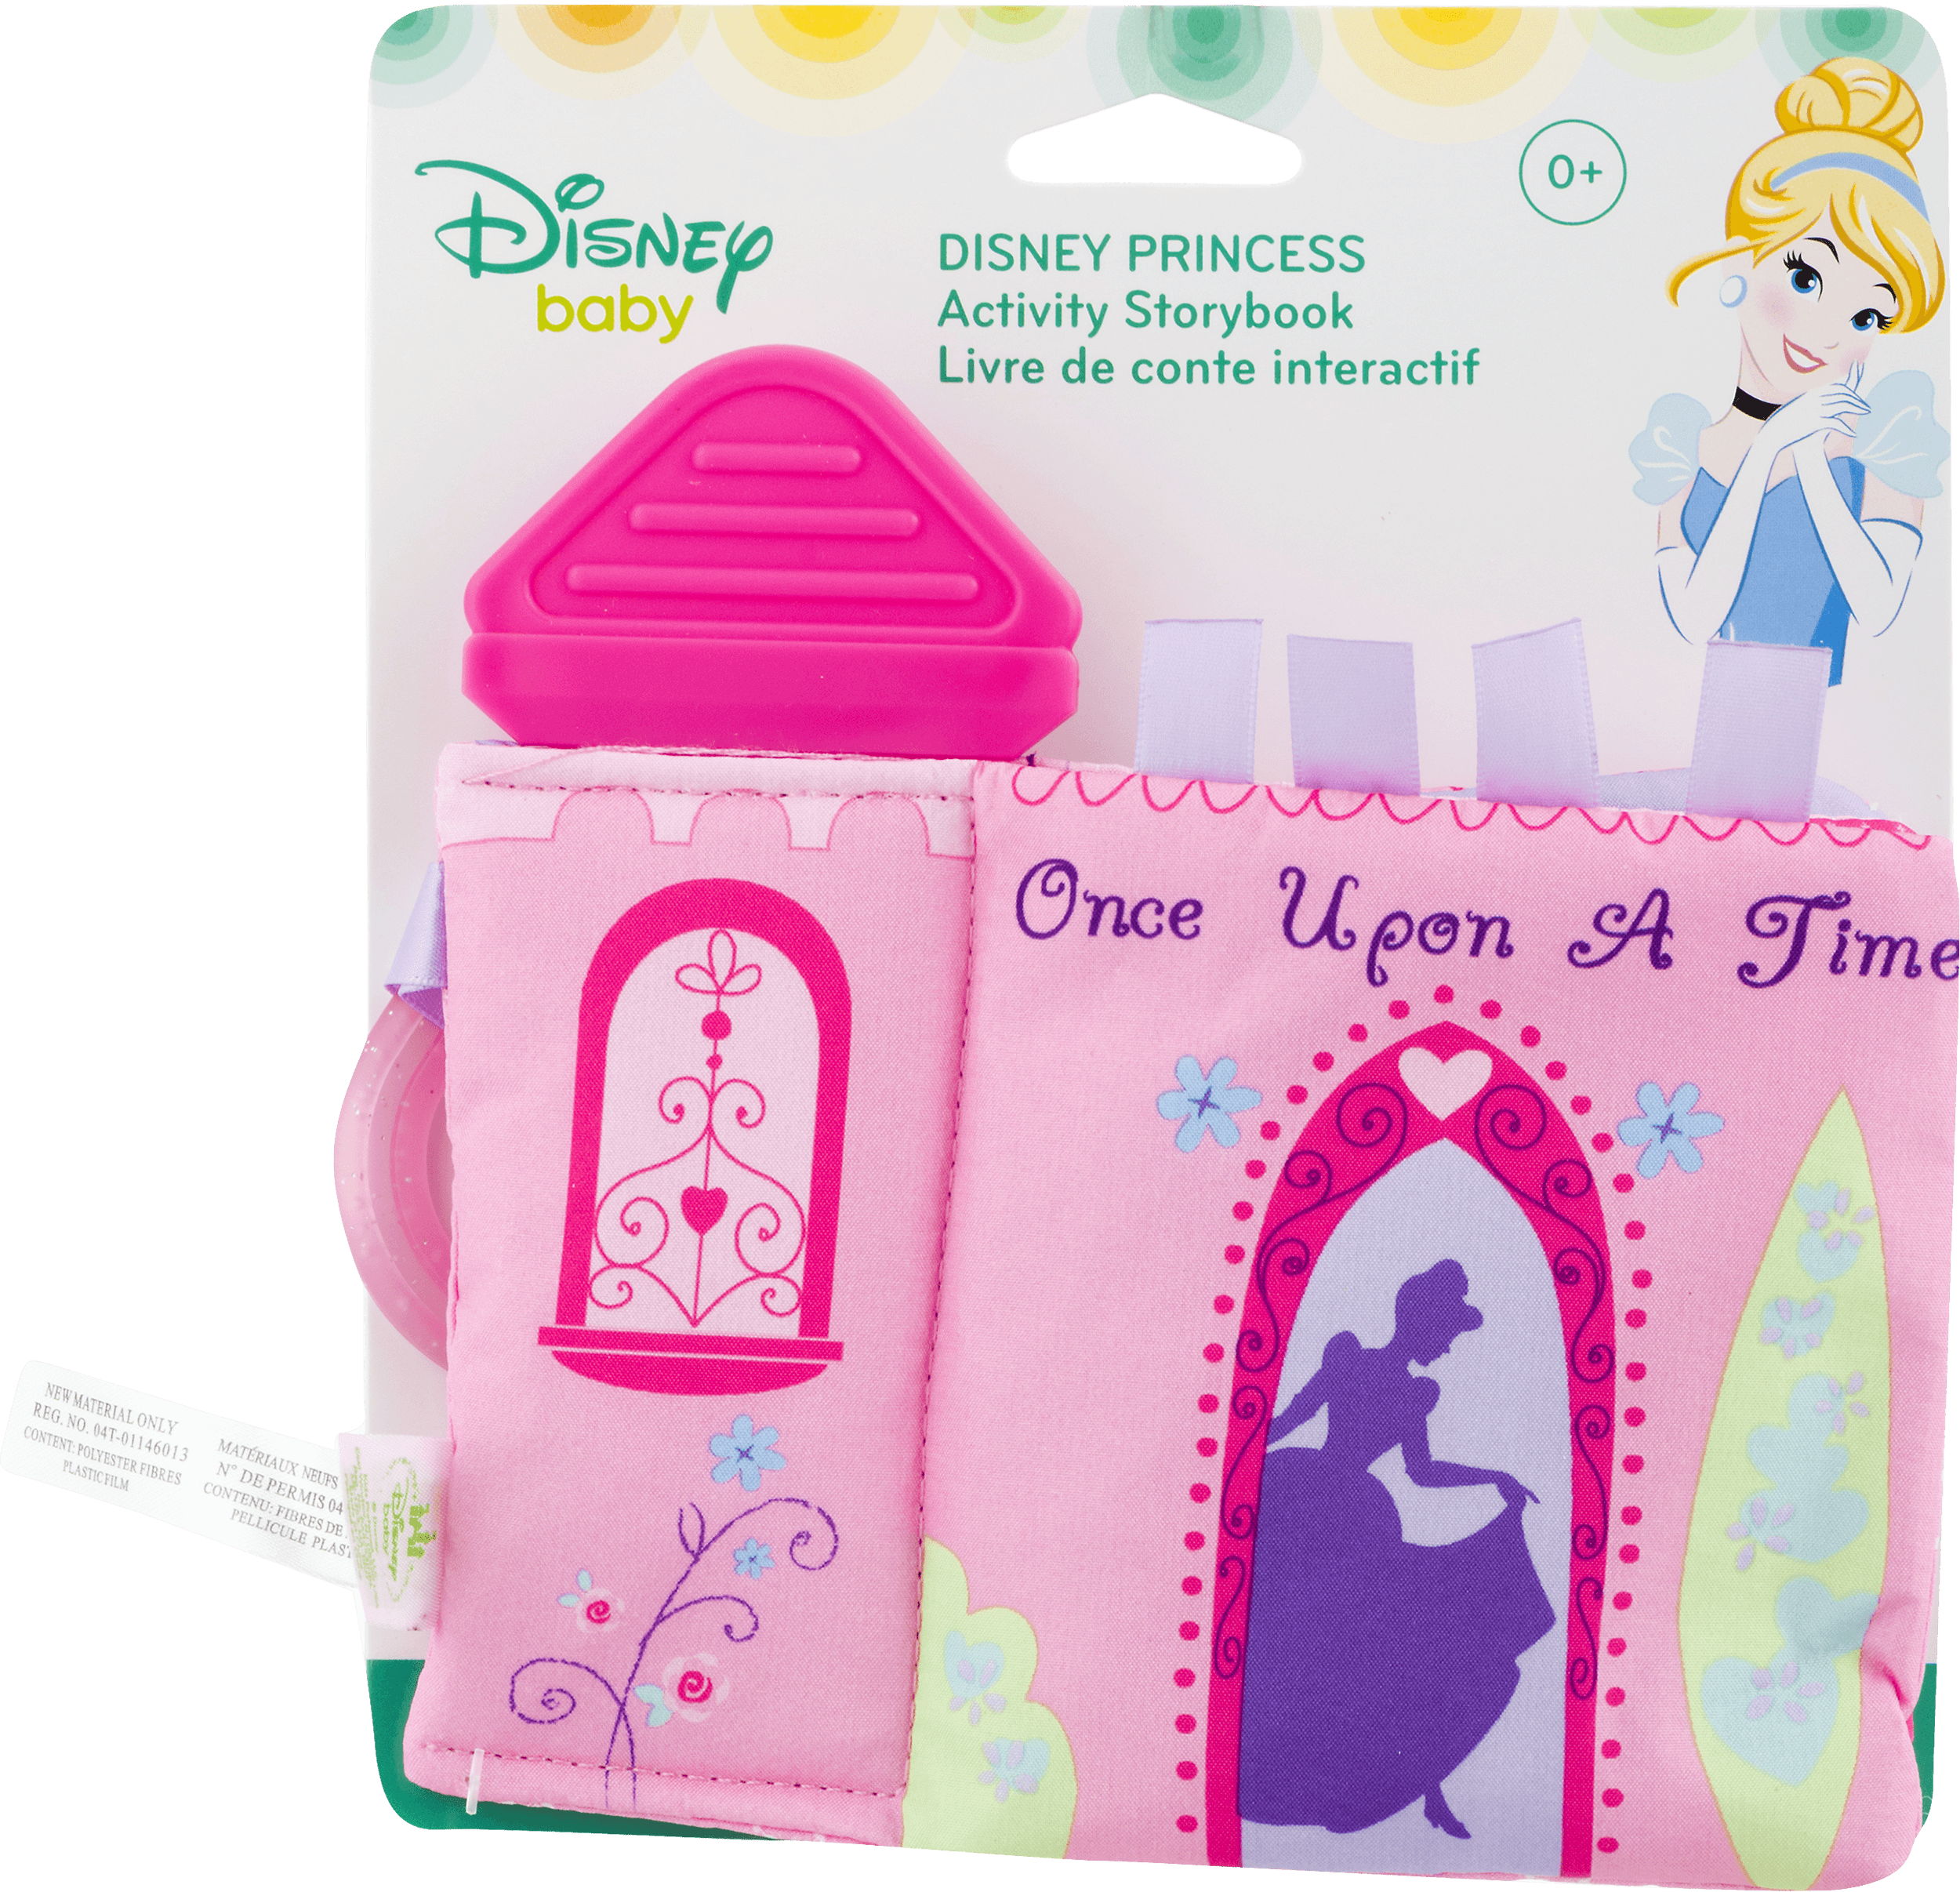 Disney Baby Disney Princess Activity Storybook Walmart Com